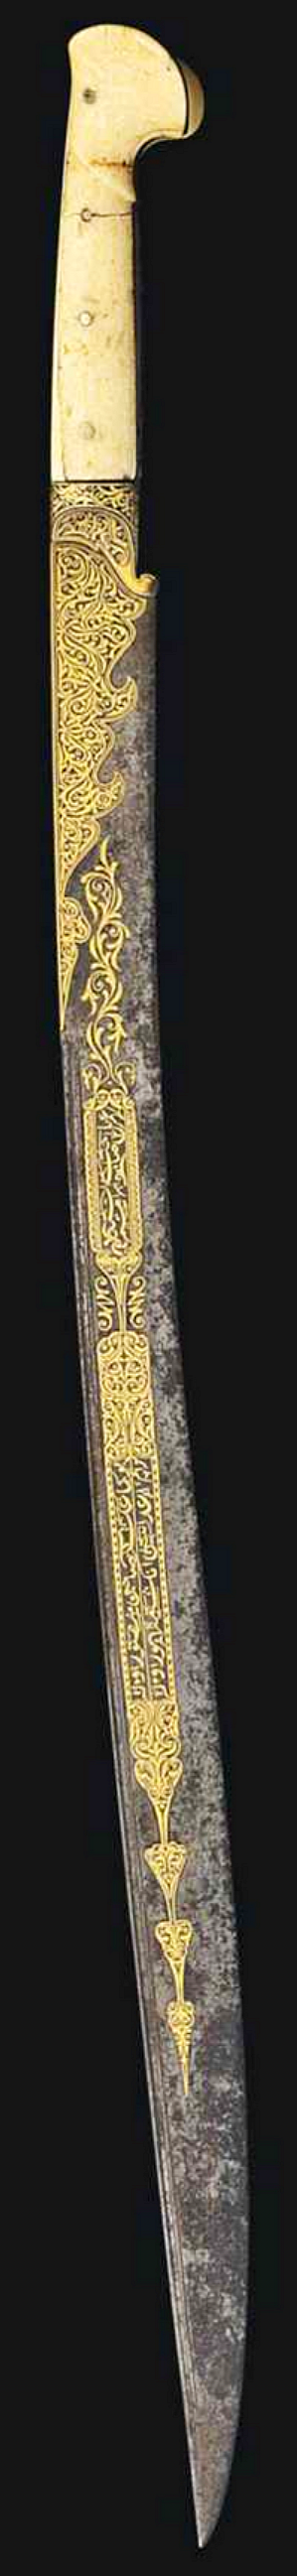 Ottoman yatagan / yataghan, Ah 1241 (1825-26 AD), single-edged slightly curved blade with extensive gold damascening, one side with two calligraphic cartouches, edged with arabesque and issuing tapering palmettes and scrolling vine, the other side with similar cartouches densely filled with scrolling arabesques, cusped cartouche leading to the hilt on each side similarly filled, the spine with date in a cartouche surrounded by scrolling vine, walrus ivory hilt, signed:Ibrahim, 27¼in…